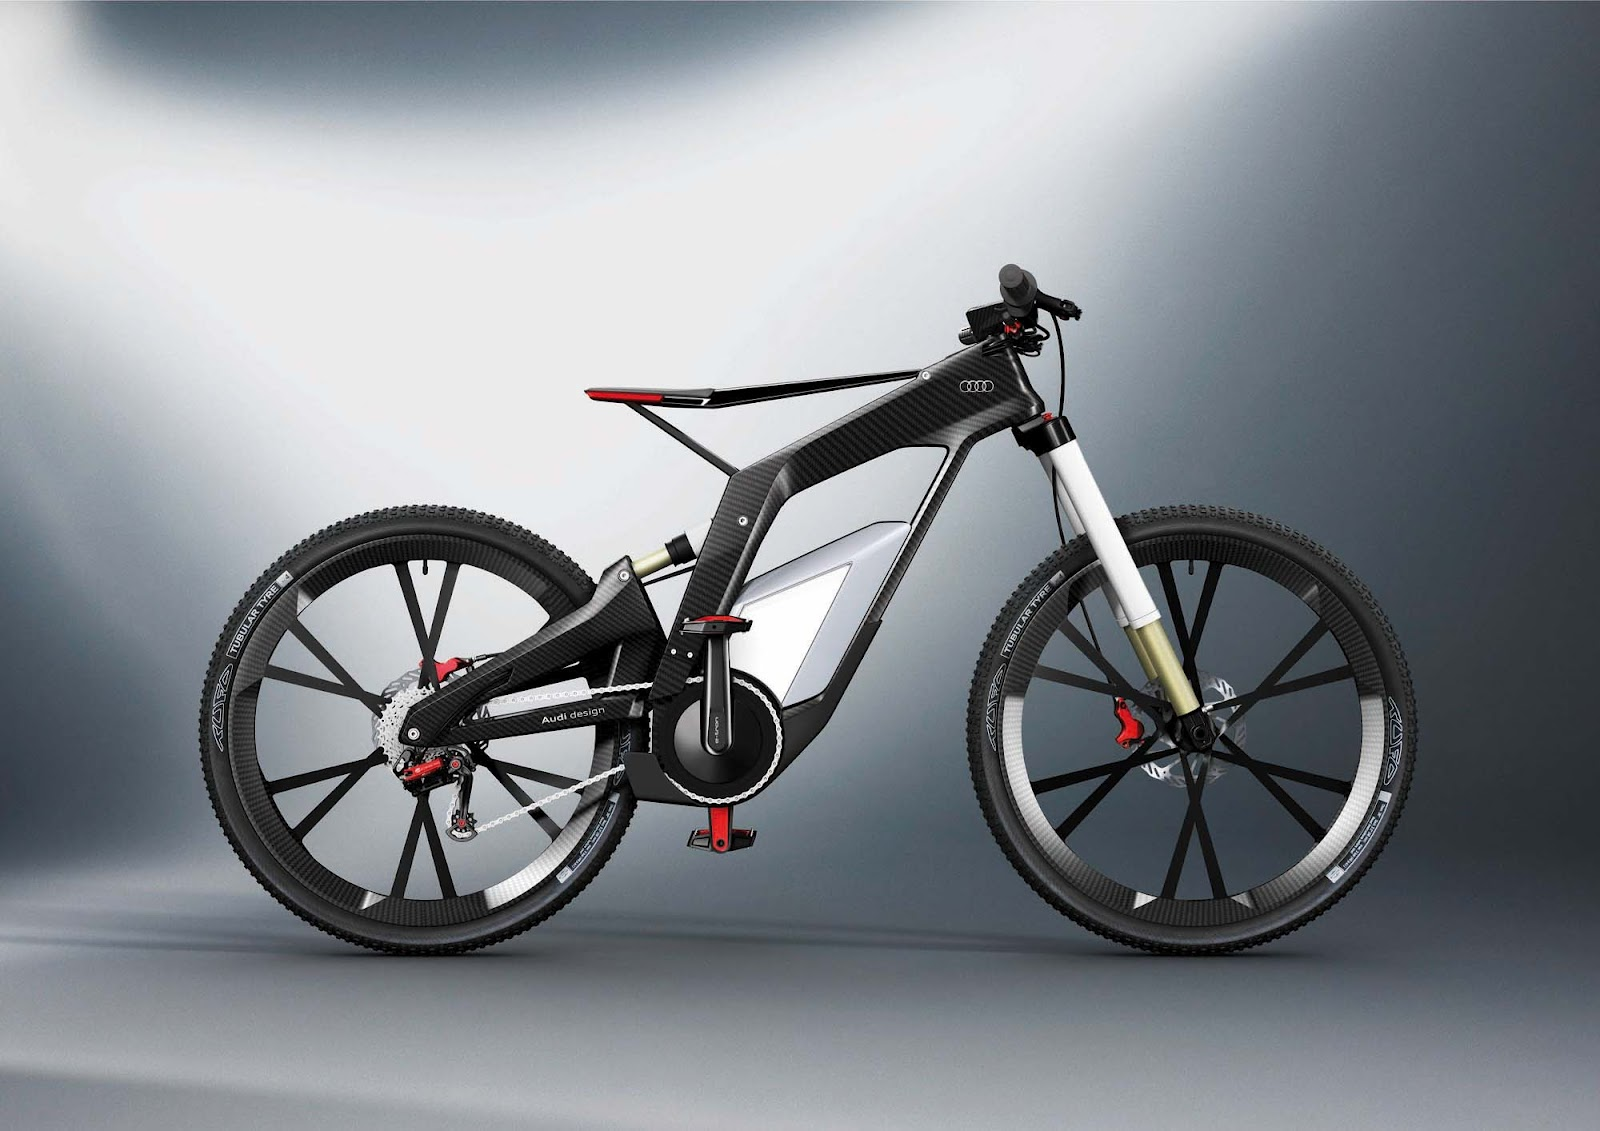 audi e-bike electric bike hd wallpapers | hd car wallpapers